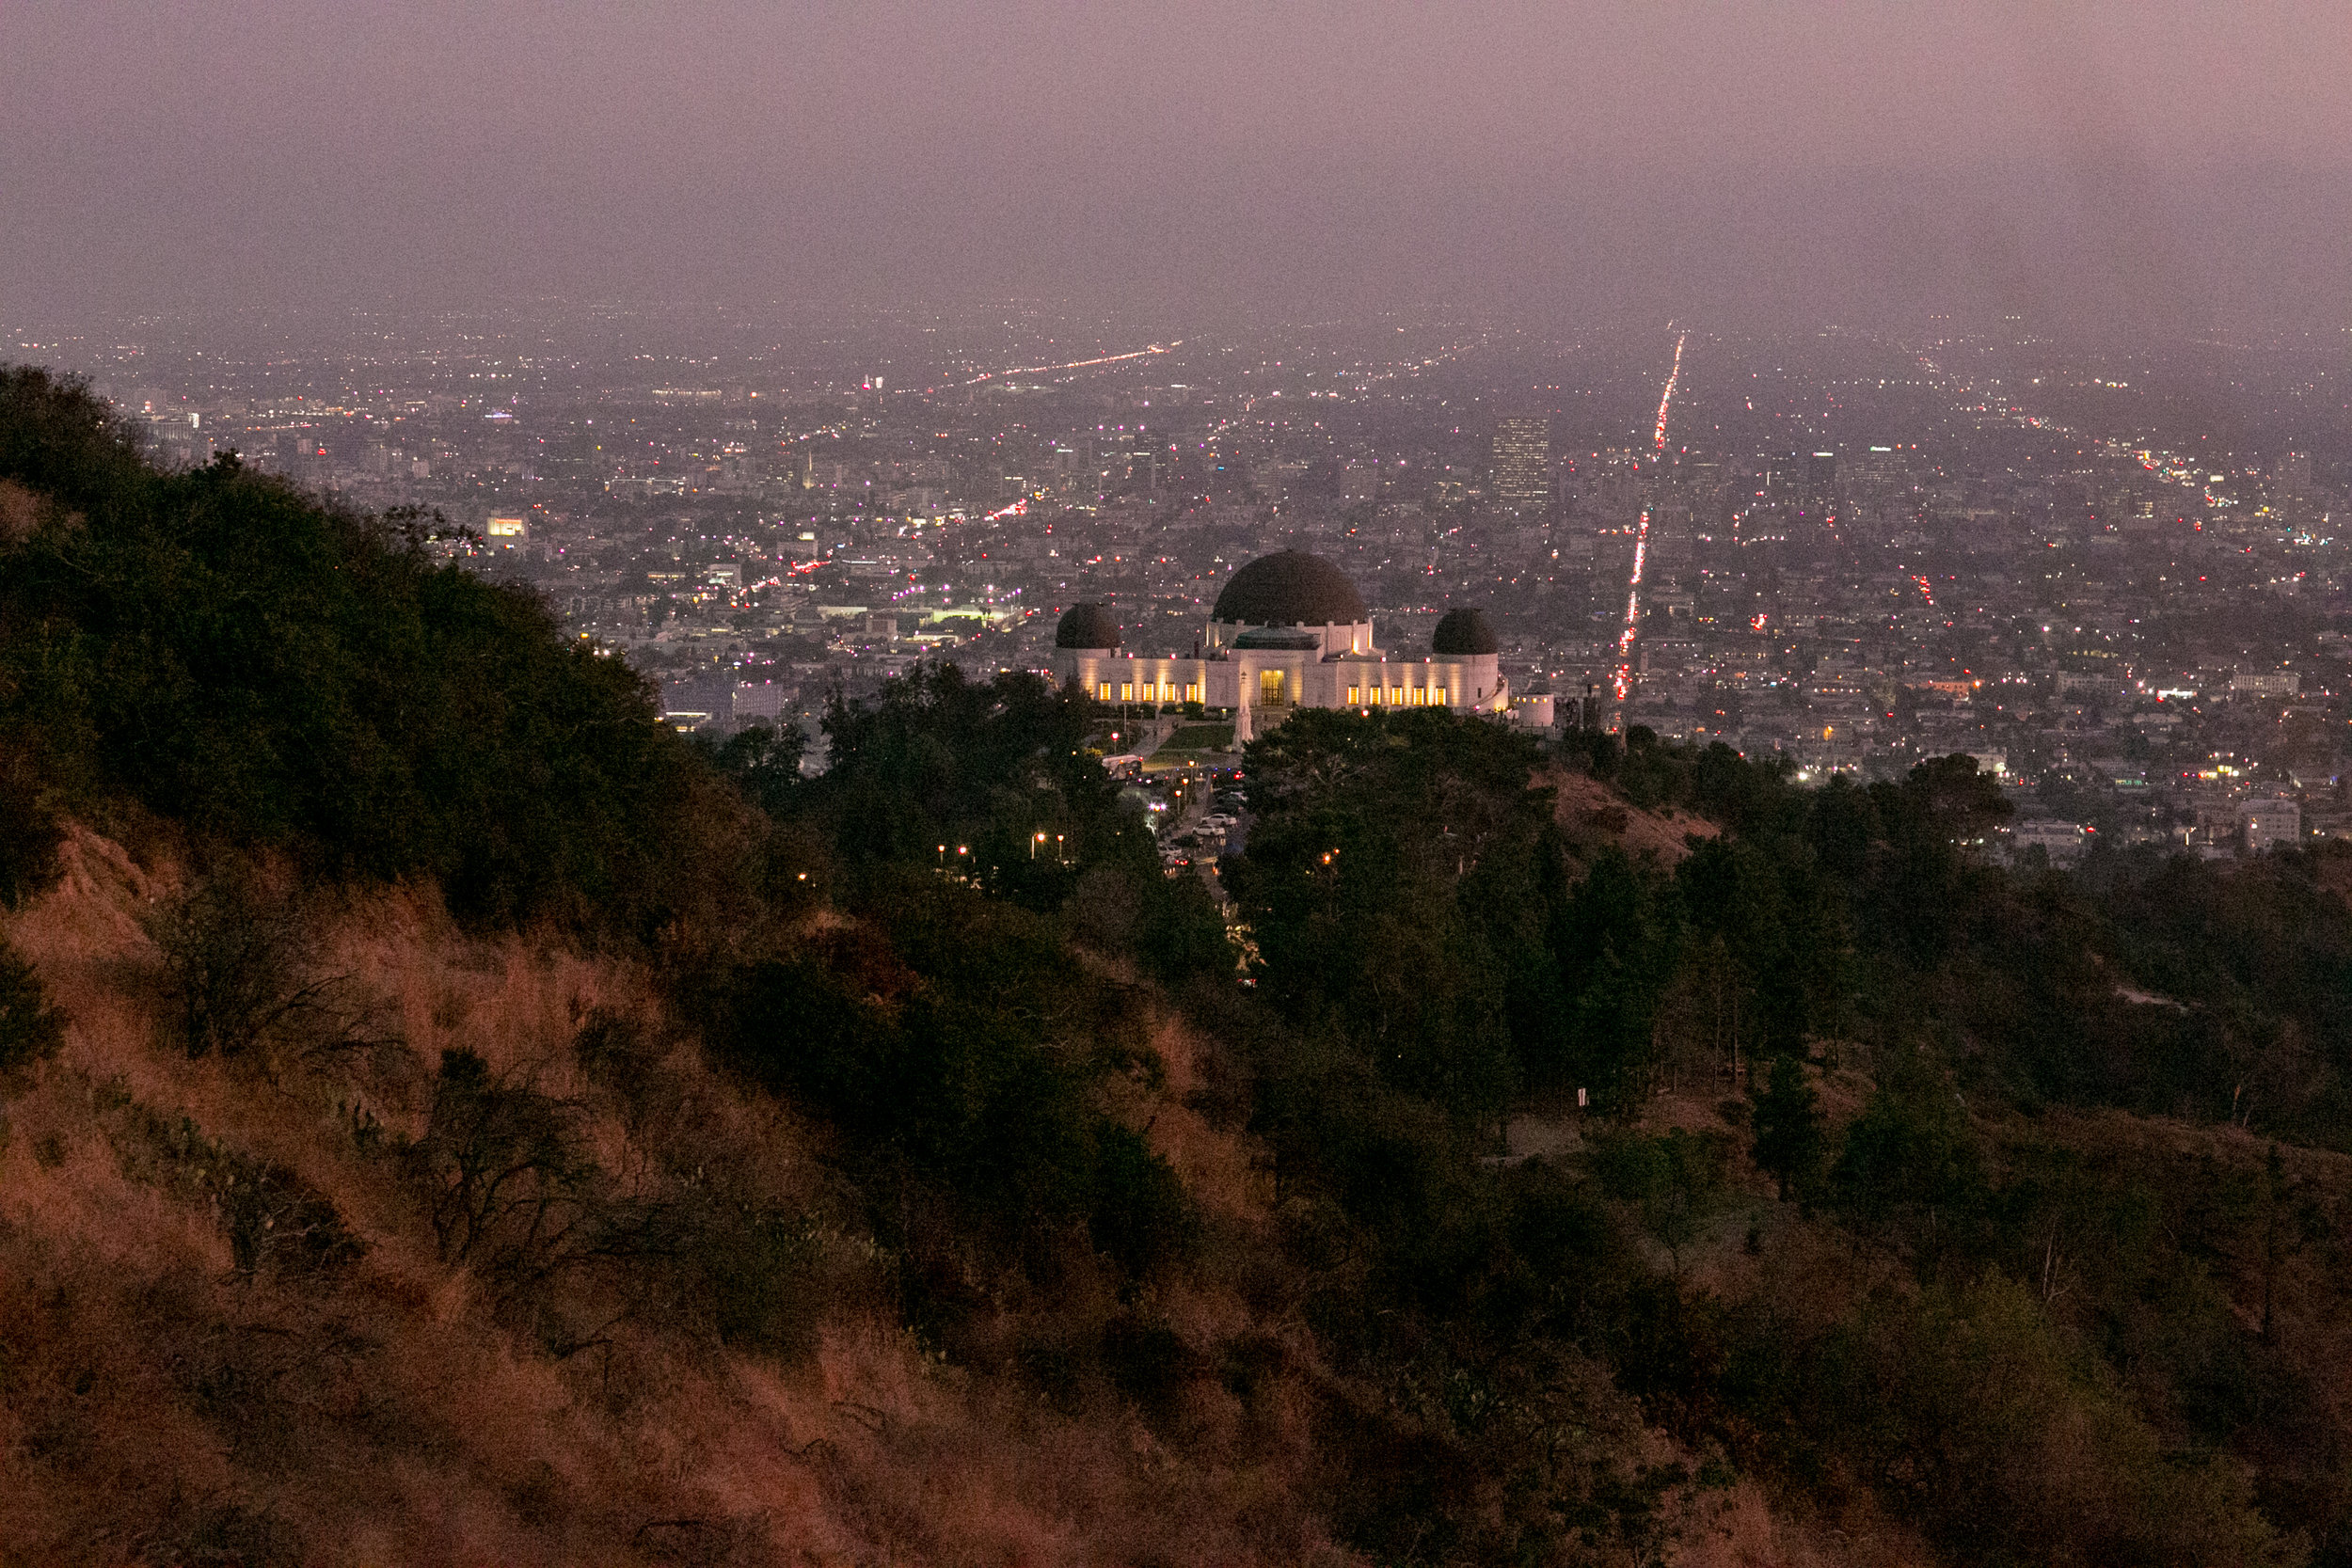 24-2019-proposal-griffith-park-observatory.jpg